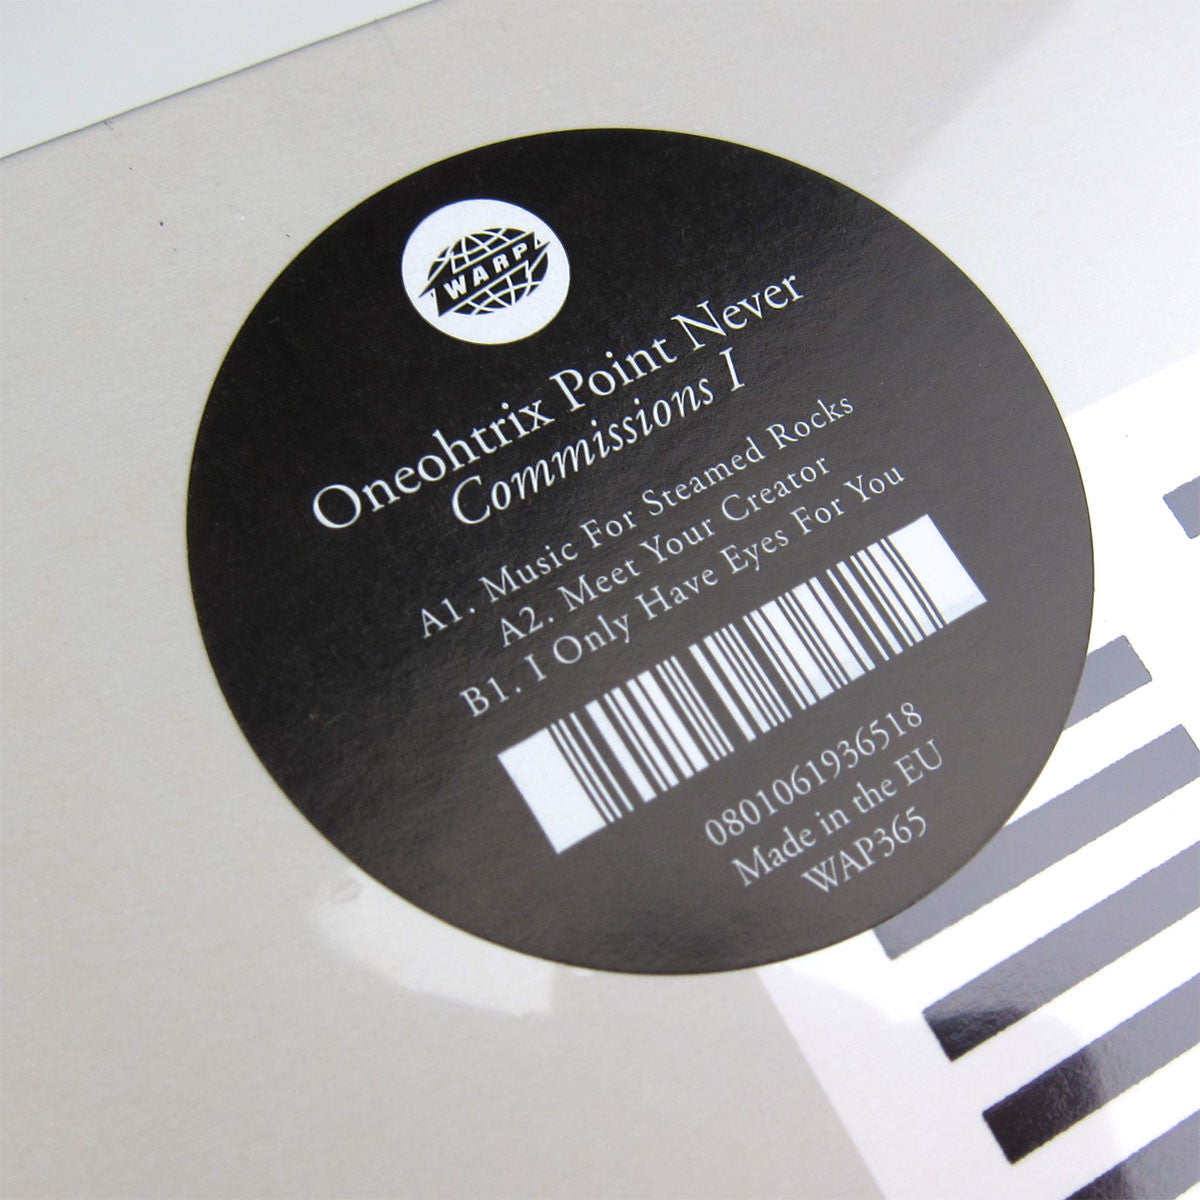 Oneohtrix Point Never: Commissions I Vinyl LP (Record Store Day 2014) 2